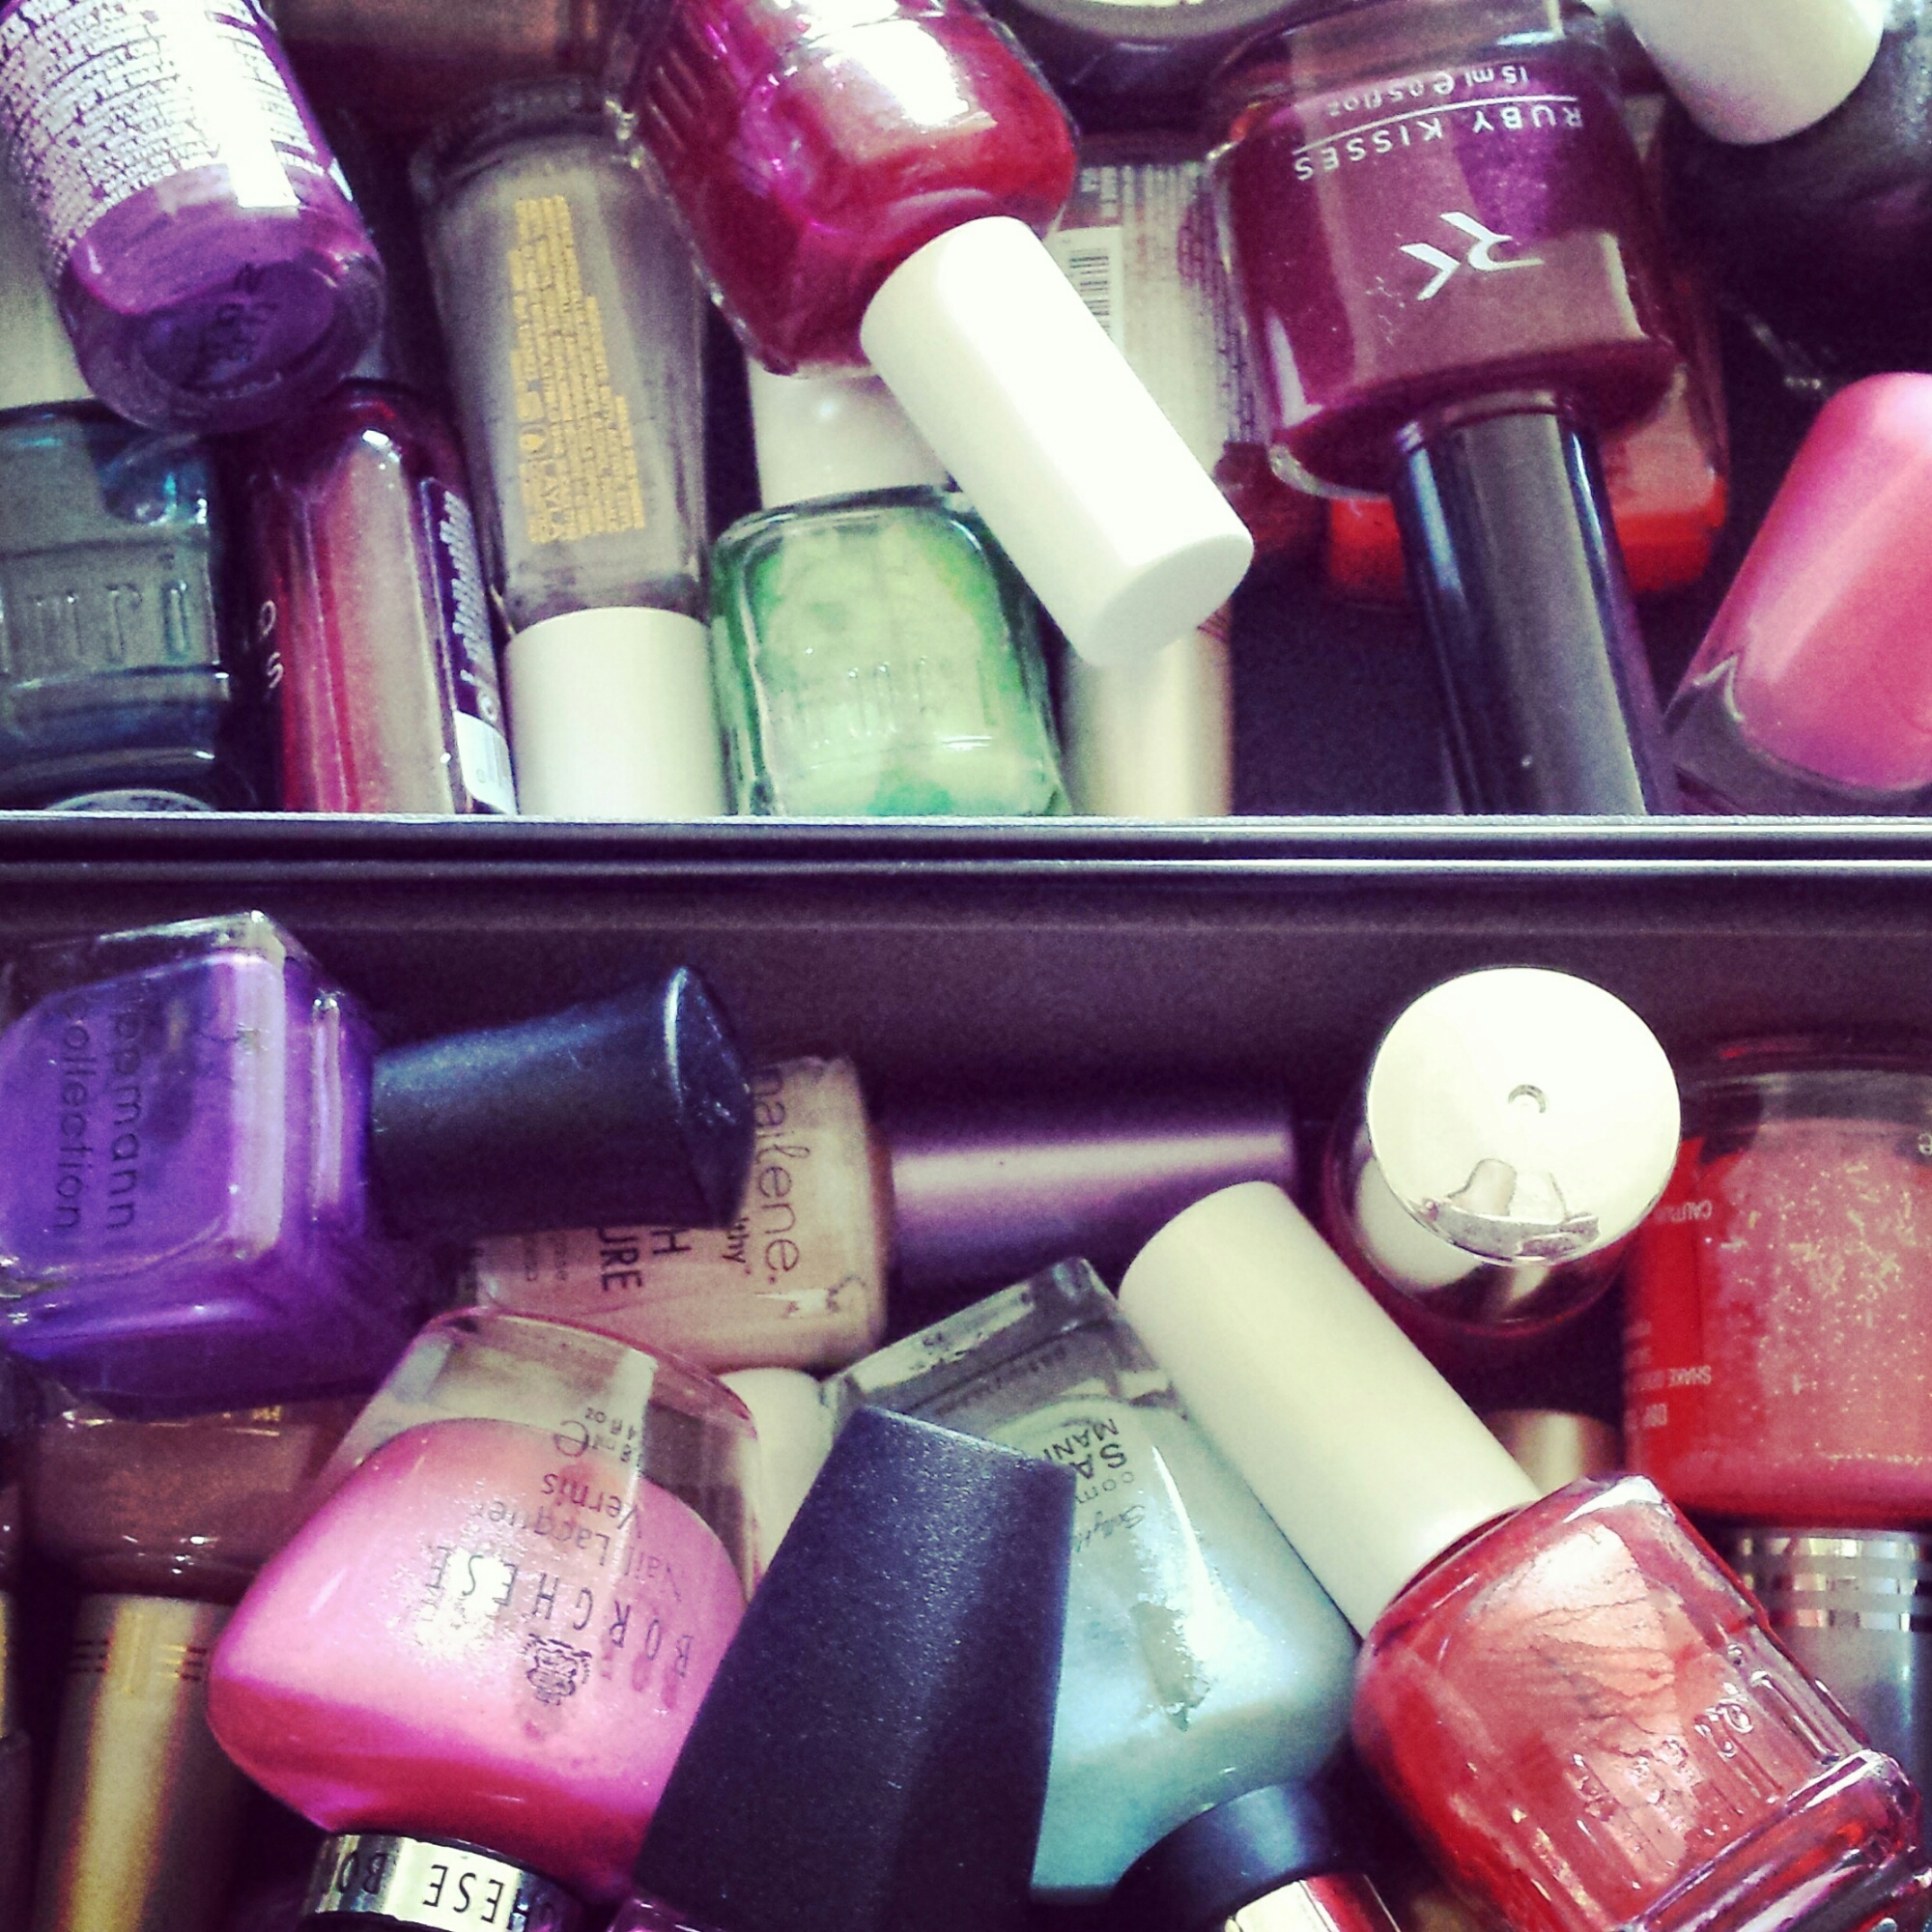 My collection of nail polish